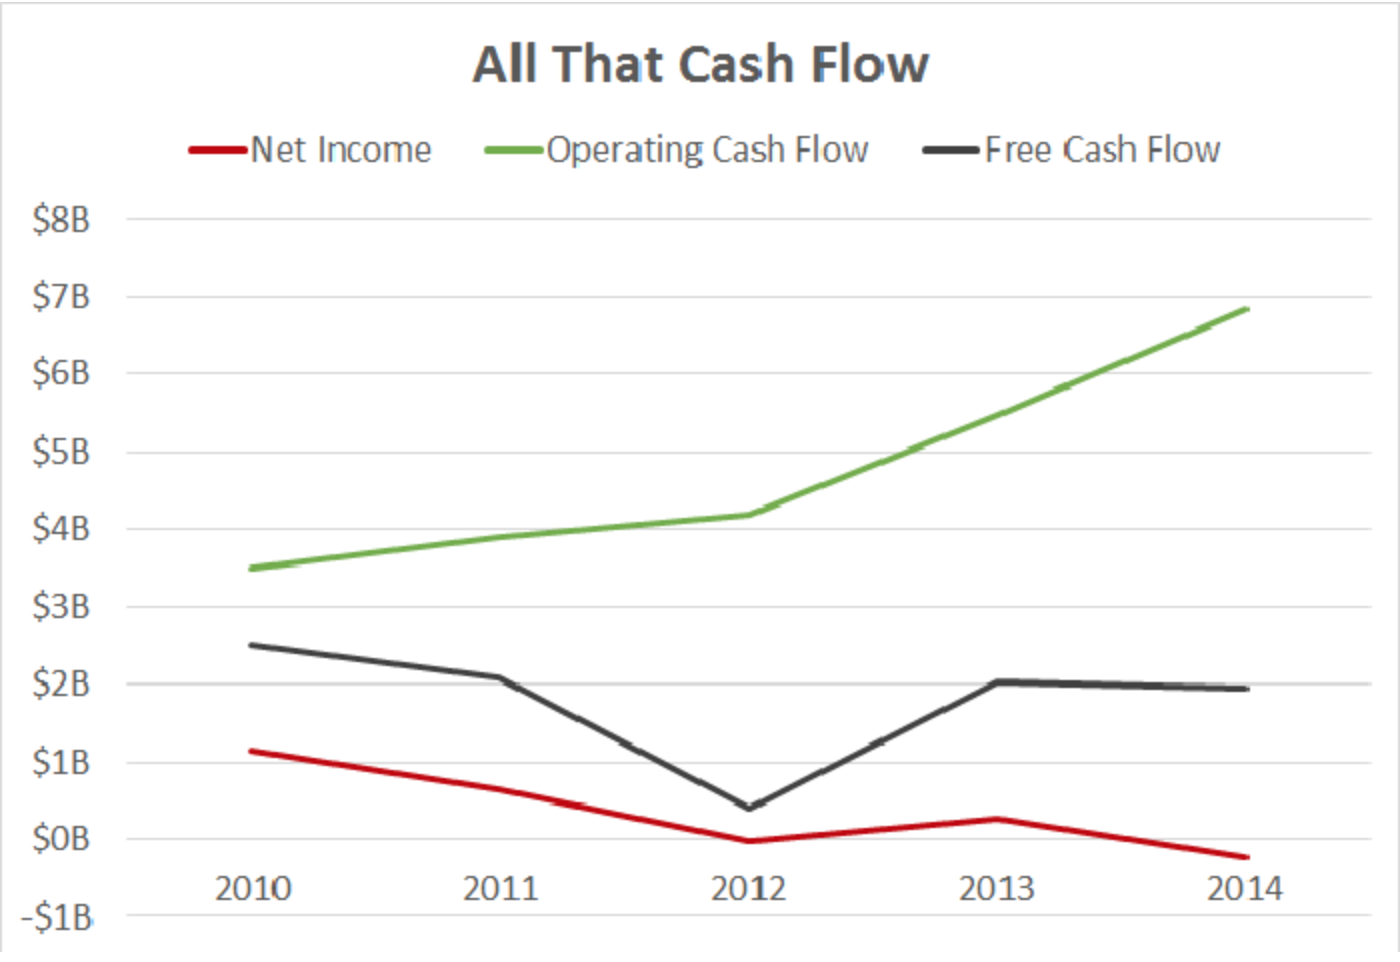 Net Income Over Cashflow Of Project Finance